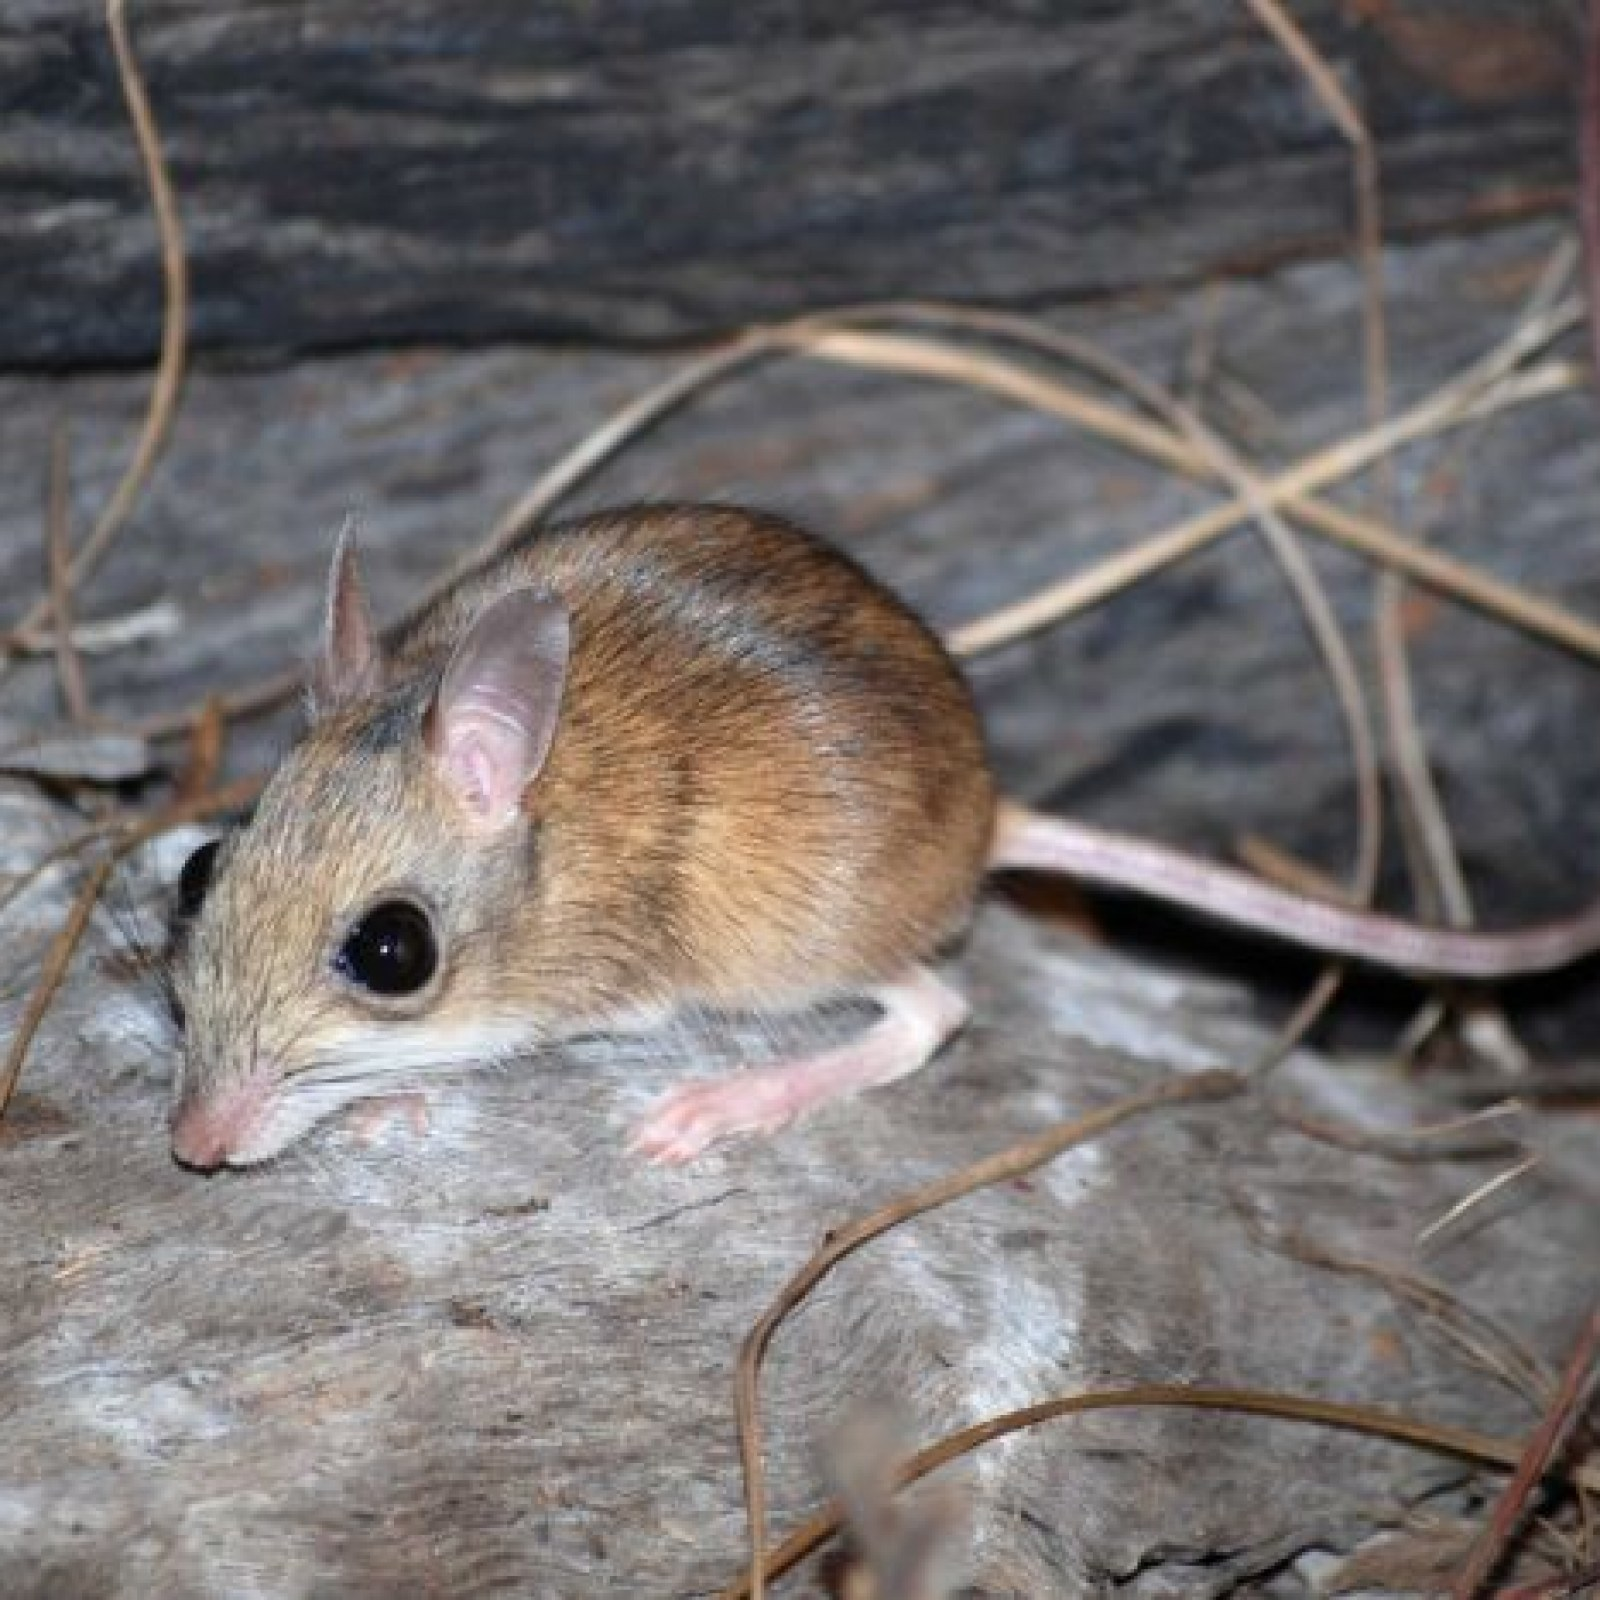 Endangered Hopping Rodent Captured on Camera for First Time